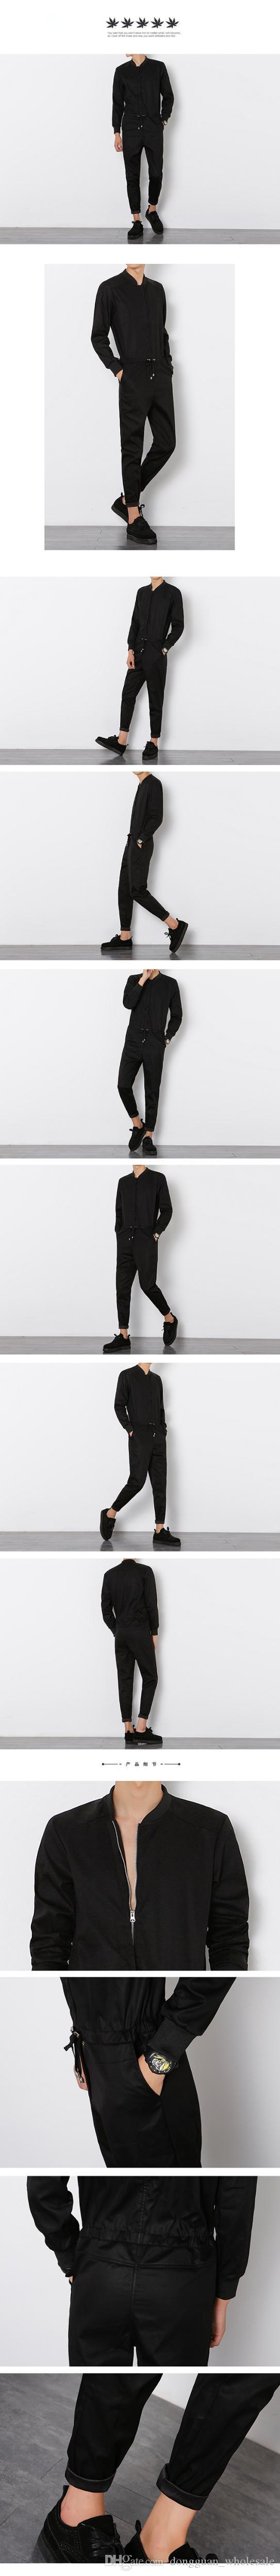 2018 Mens Black Long Sleeved Jumpsuit Male Elegant Cool Overalls Summer Hip-Hop Rompers Harem Bib Pants 041605